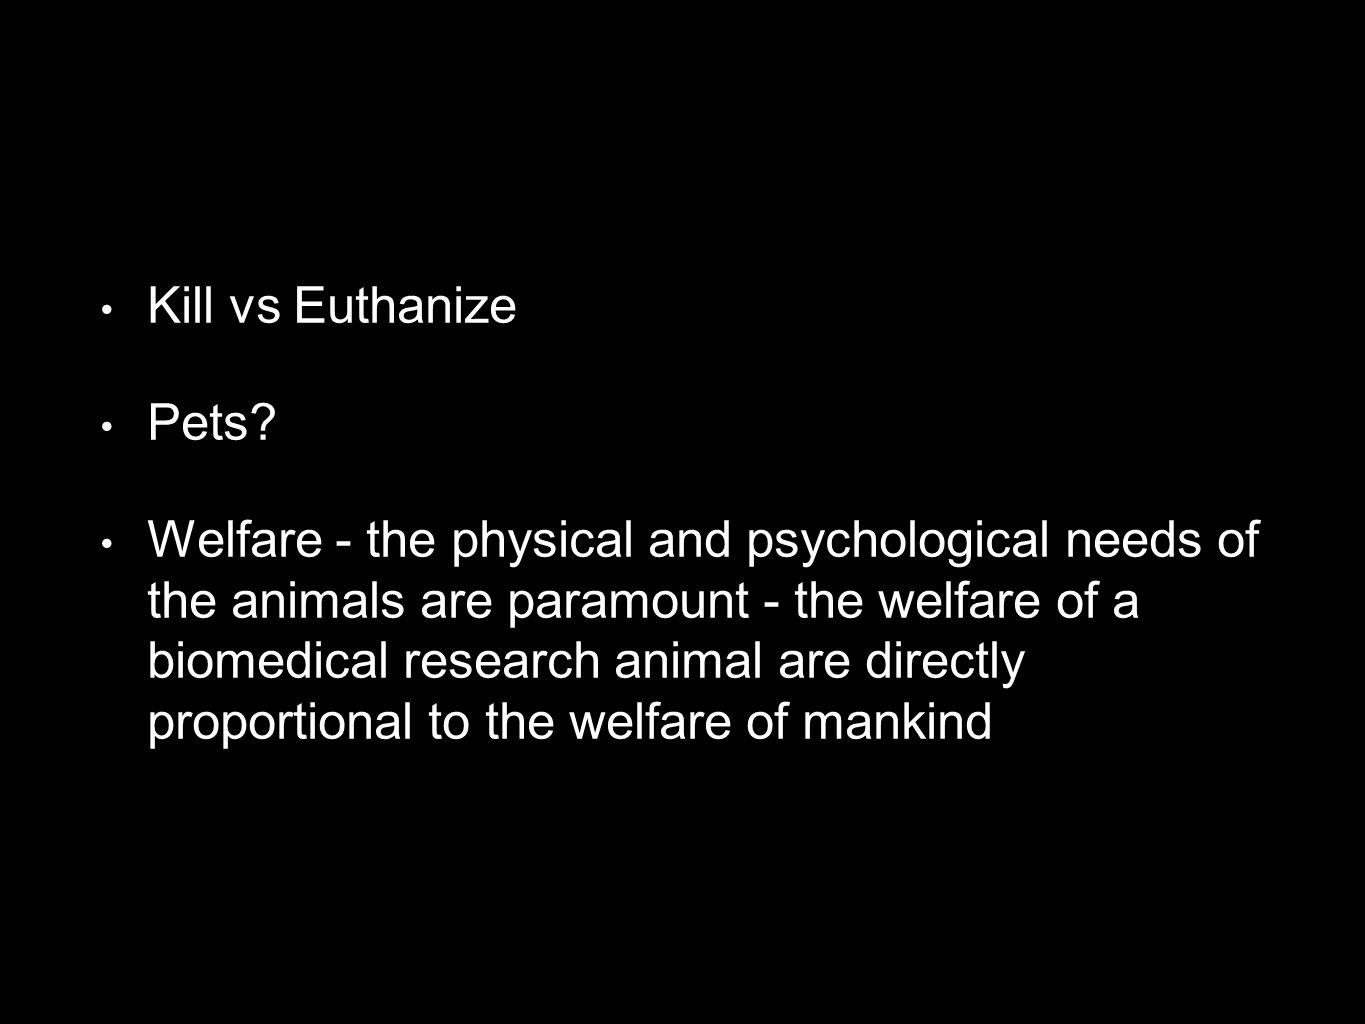 Kill vs Euthanize Pets? Welfare - the physical and psychological needs of the animals are paramount - the welfare of a biomedical research animal are